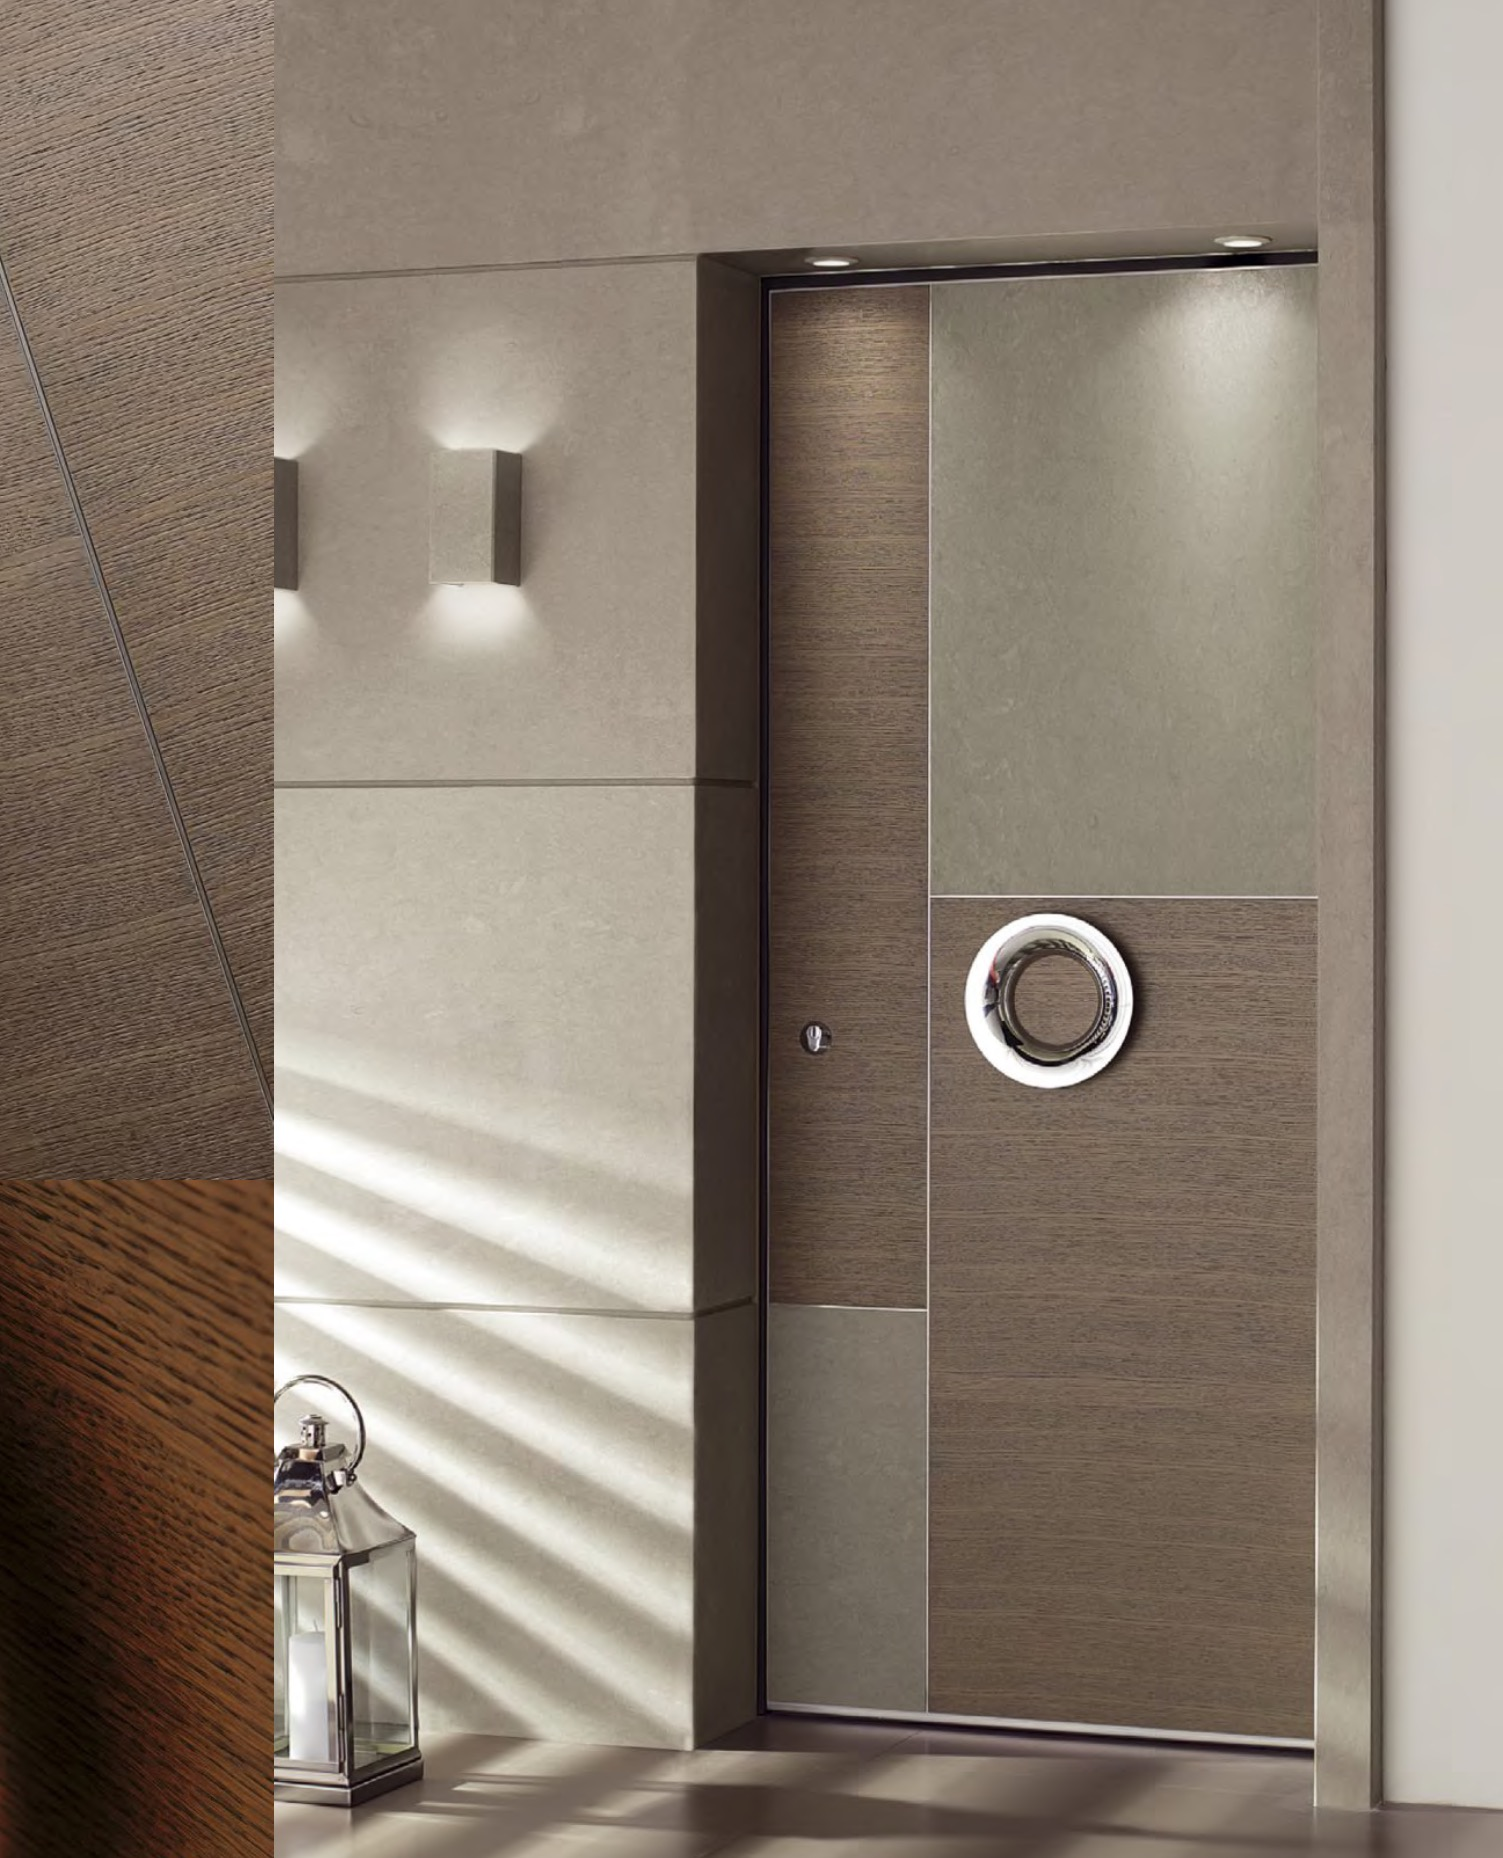 Interno Security Door,